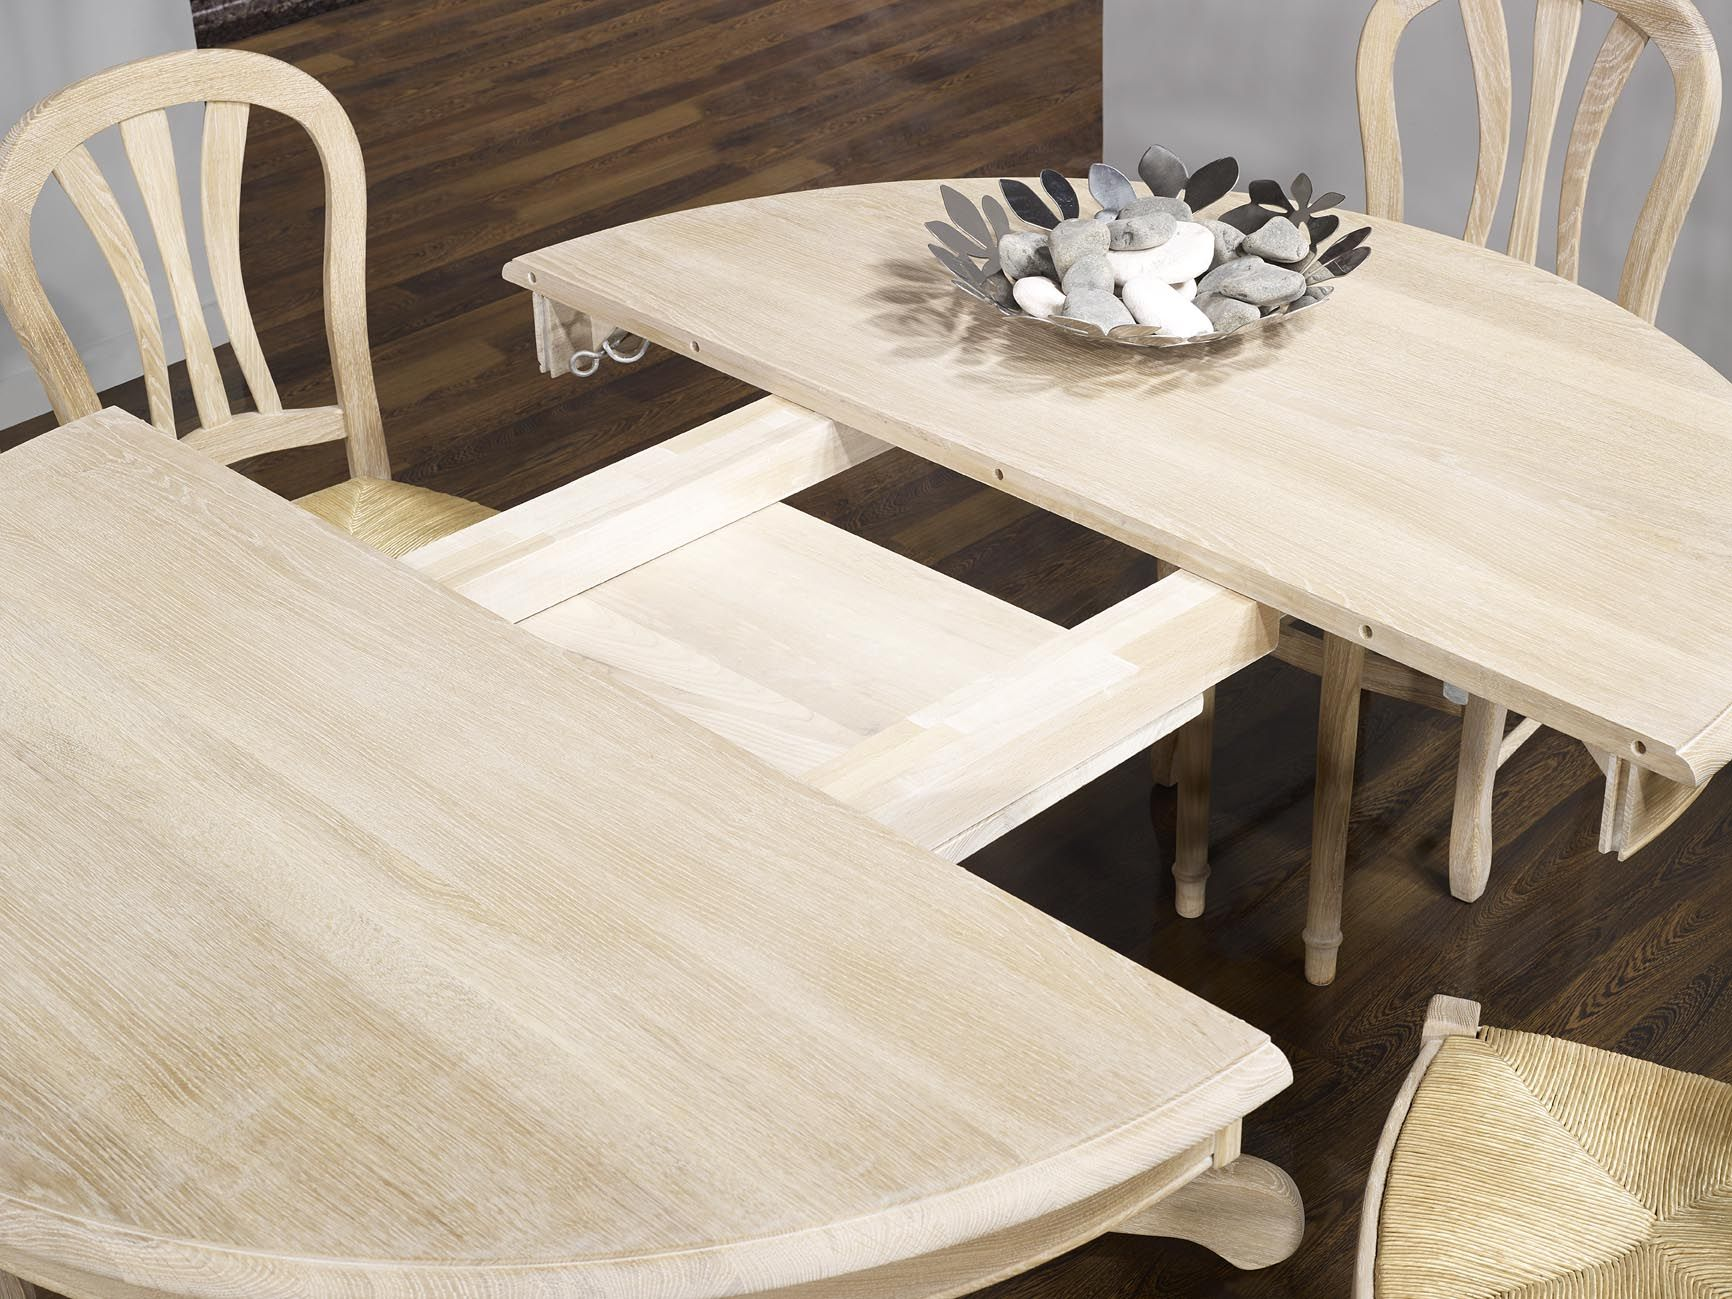 51609157786542464c72ee7f063e862a Meilleur De De Table Ronde Jardin